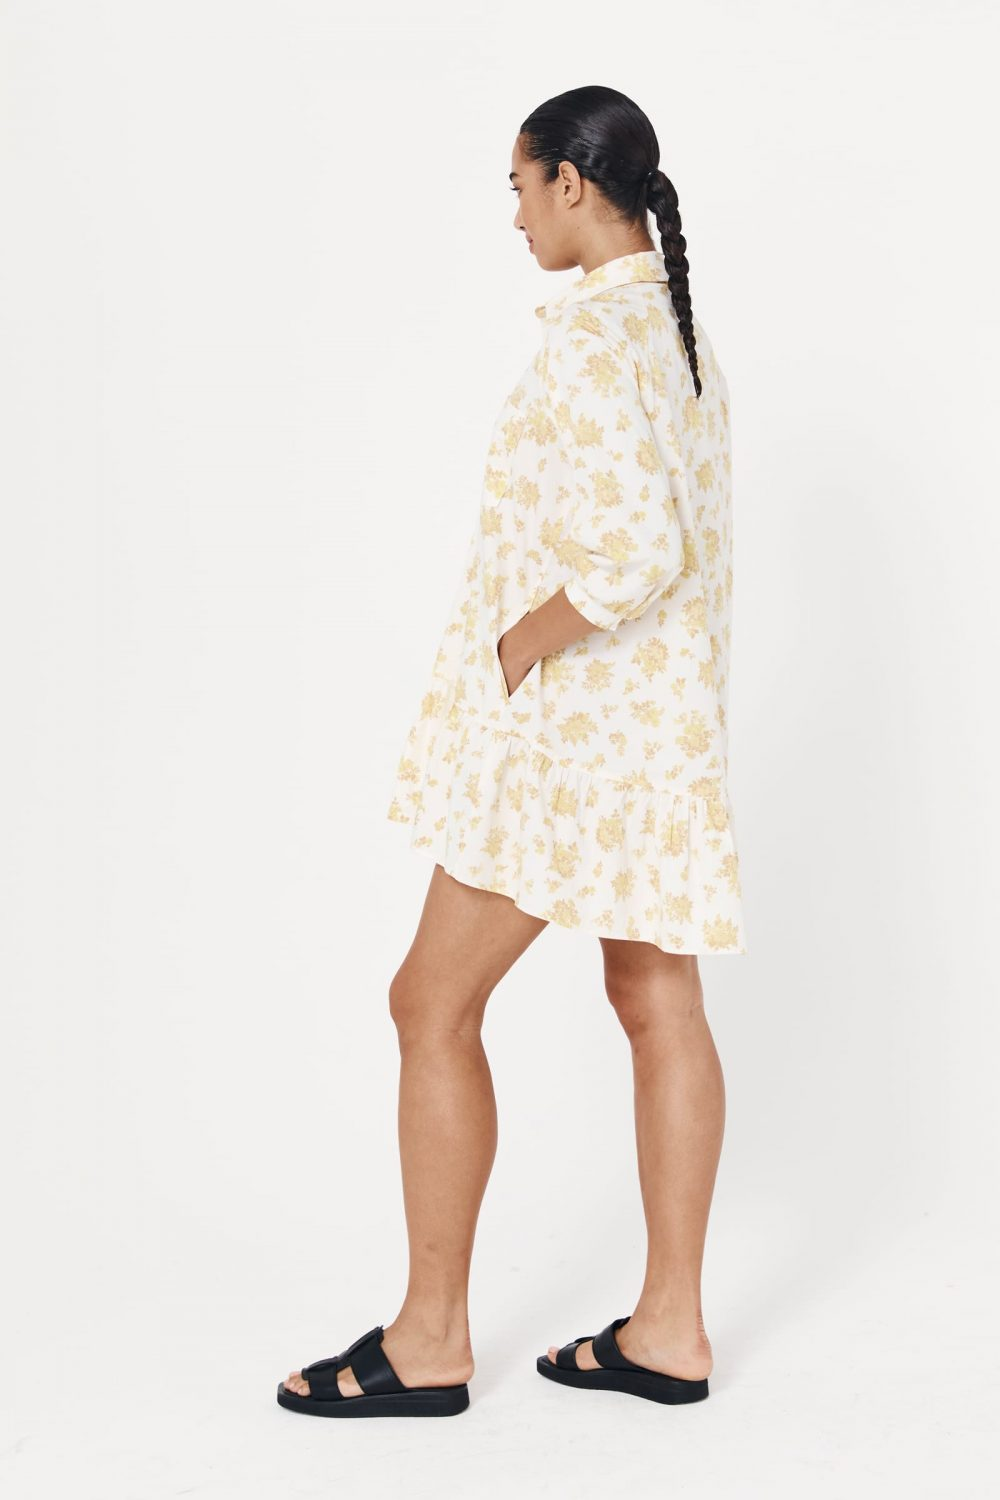 Rowie The Label Rs21 Sodbl Stacey Organic Mini Dress Blossom Spring21 1060